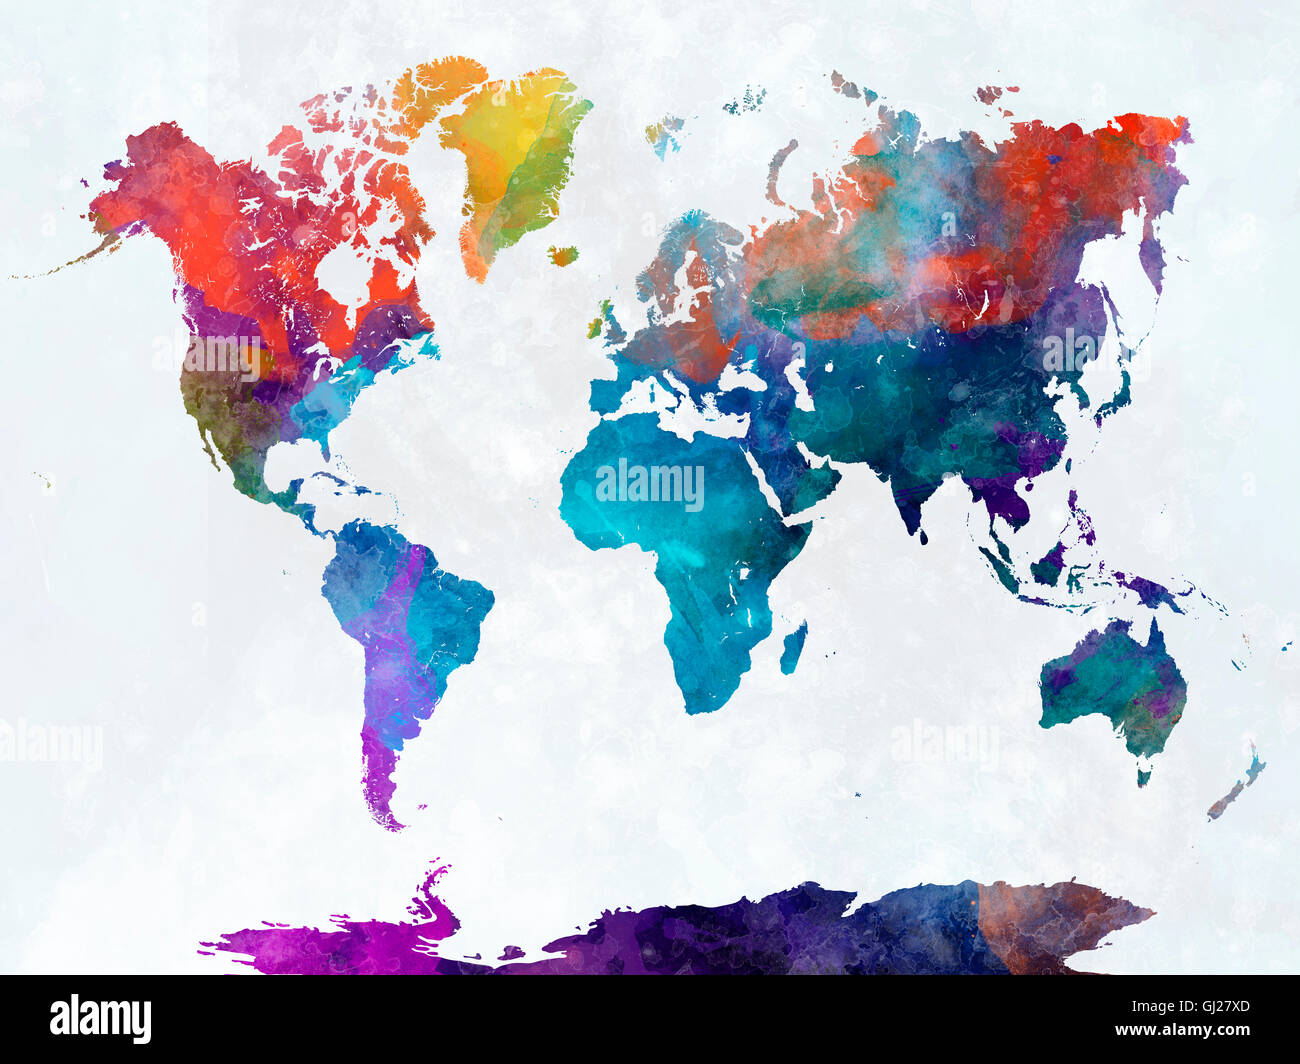 World map in watercolor painting abstract splatters stock photo world map in watercolor painting abstract splatters gumiabroncs Gallery